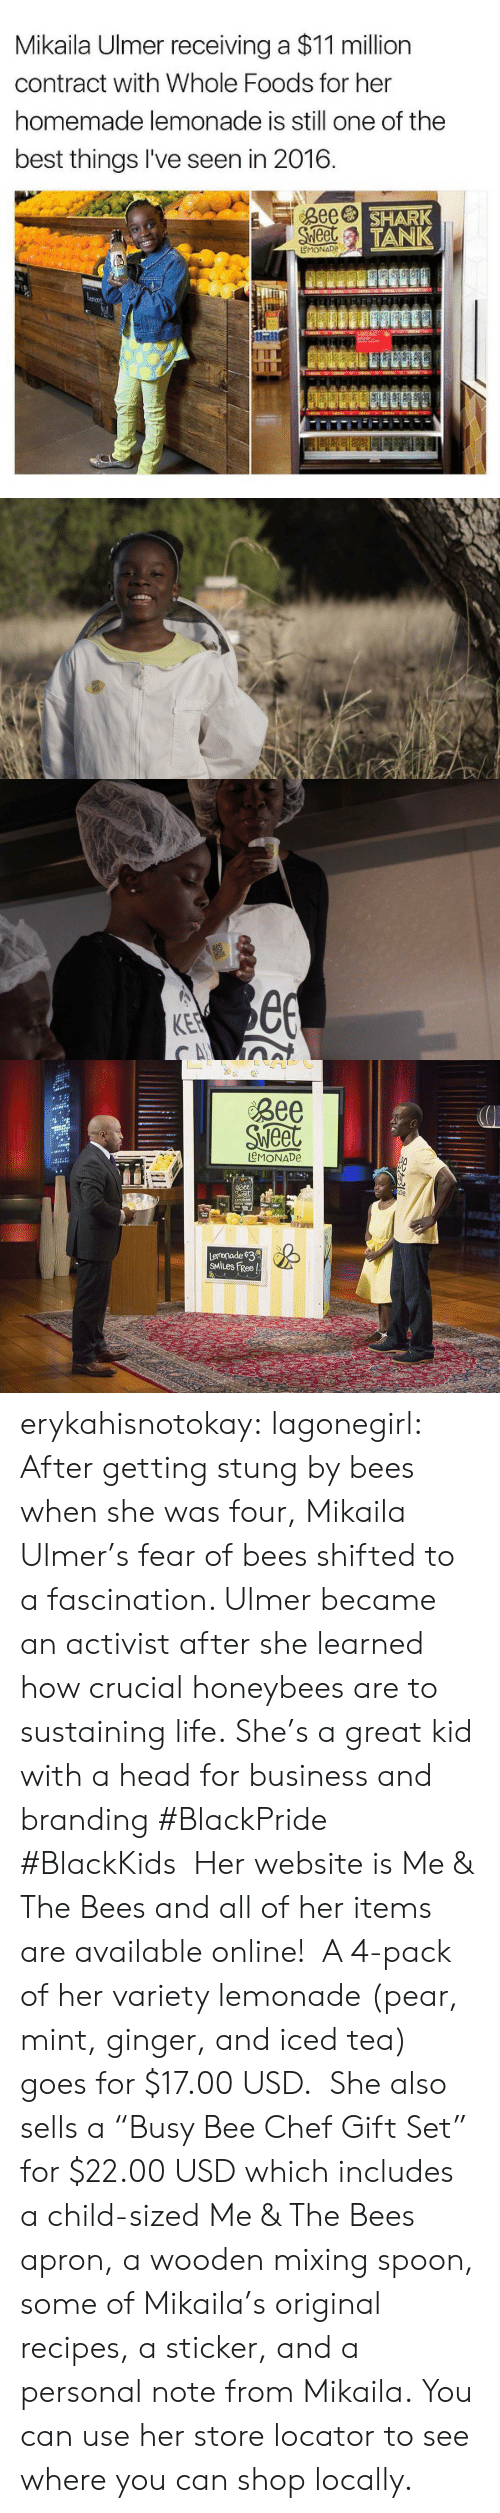 """apron: Mikaila Ulmer receiving a $11 million  contract with Whole Foods for her  homemade lemonade is still one of the  best things I've seen in 2016.  Bee  Sweet  SHARK  TANK  eMONADe  LOCAL  L   3ee  Sweet  see  KEE  CA   Bee  Sweet  LeMONADe  Bee  Sweet  ninT  Lenonade $3  SMILES FRee ! erykahisnotokay: lagonegirl:    After getting stung by bees when she was four, Mikaila Ulmer's fear of bees shifted to a fascination. Ulmer became an activist after she learned how crucial honeybees are to sustaining life.     She's a great kid with a head for business and branding   #BlackPride #BlackKids  Her website is Me & The Beesand all of her items are available online! A 4-pack of her variety lemonade (pear, mint, ginger, and iced tea) goes for $17.00 USD. She also sells a """"Busy Bee Chef Gift Set"""" for $22.00 USD which includes a child-sized Me & The Bees apron, a wooden mixing spoon, some of Mikaila's original recipes, a sticker, and a personal note from Mikaila. You can use her store locator to see where you can shop locally."""